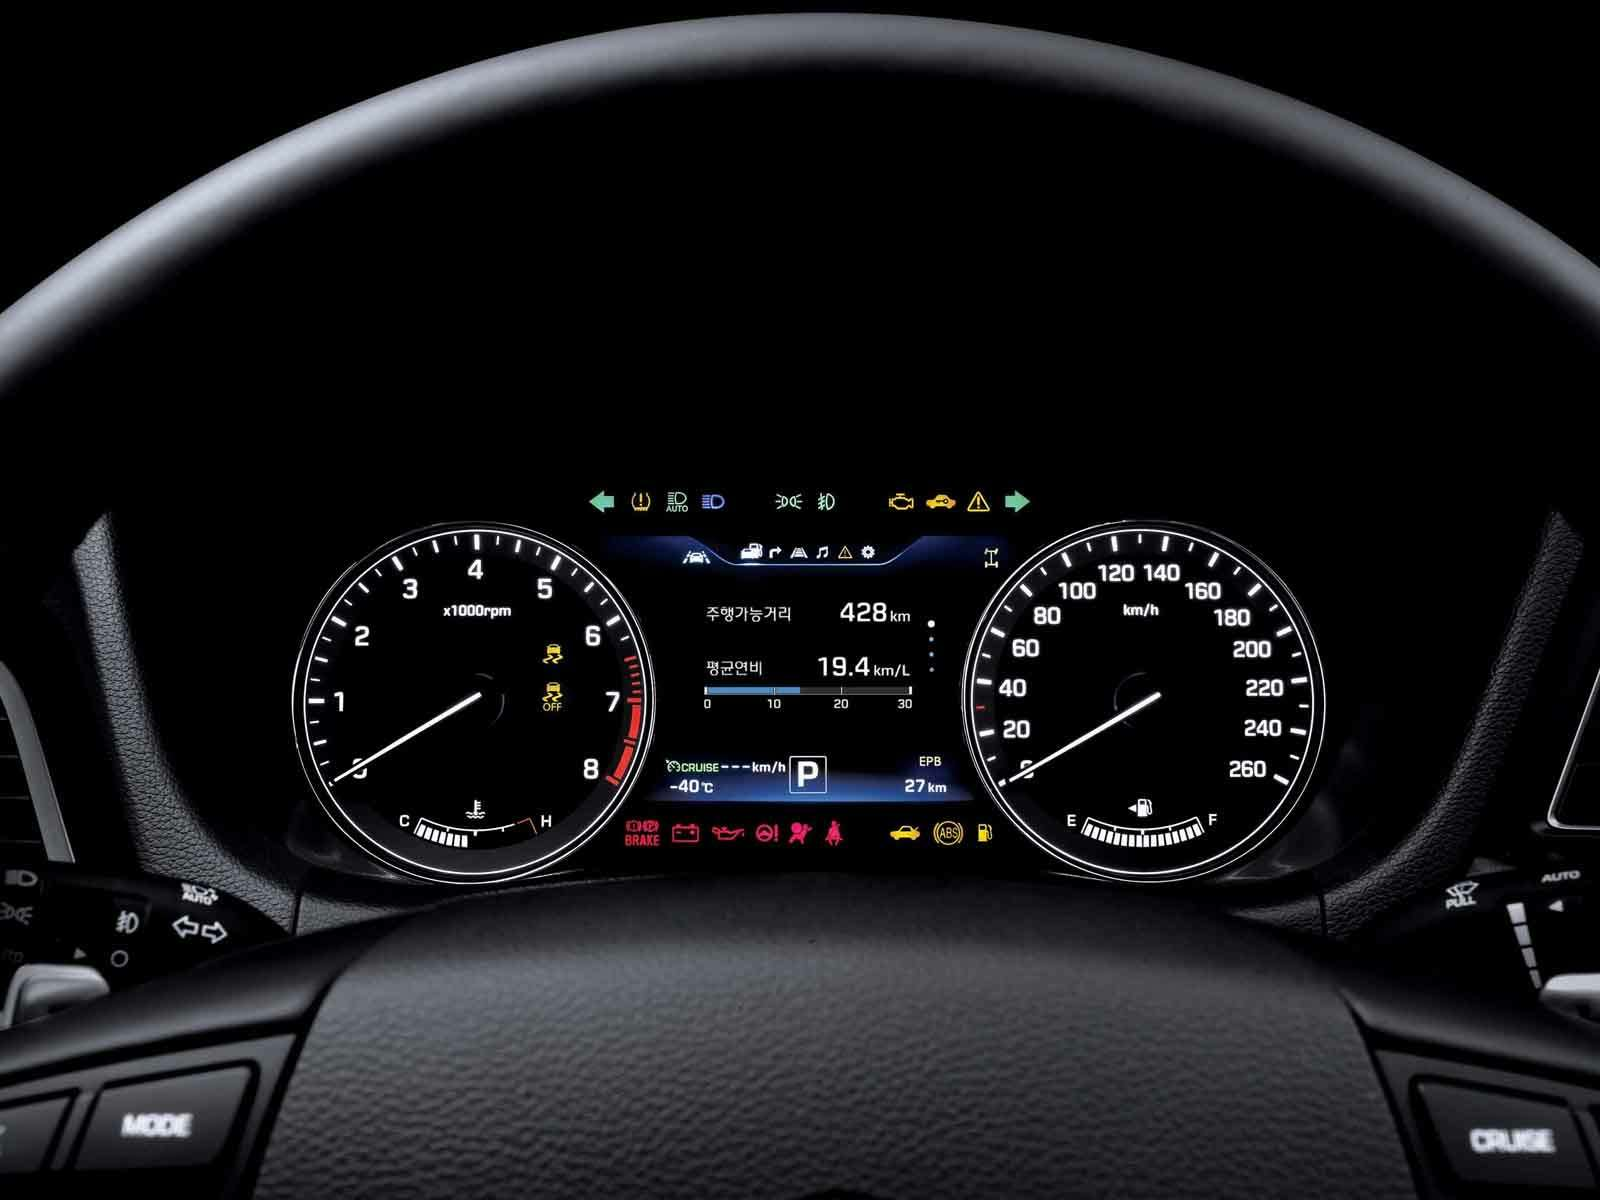 DH_TFT LCD Instrument Panel